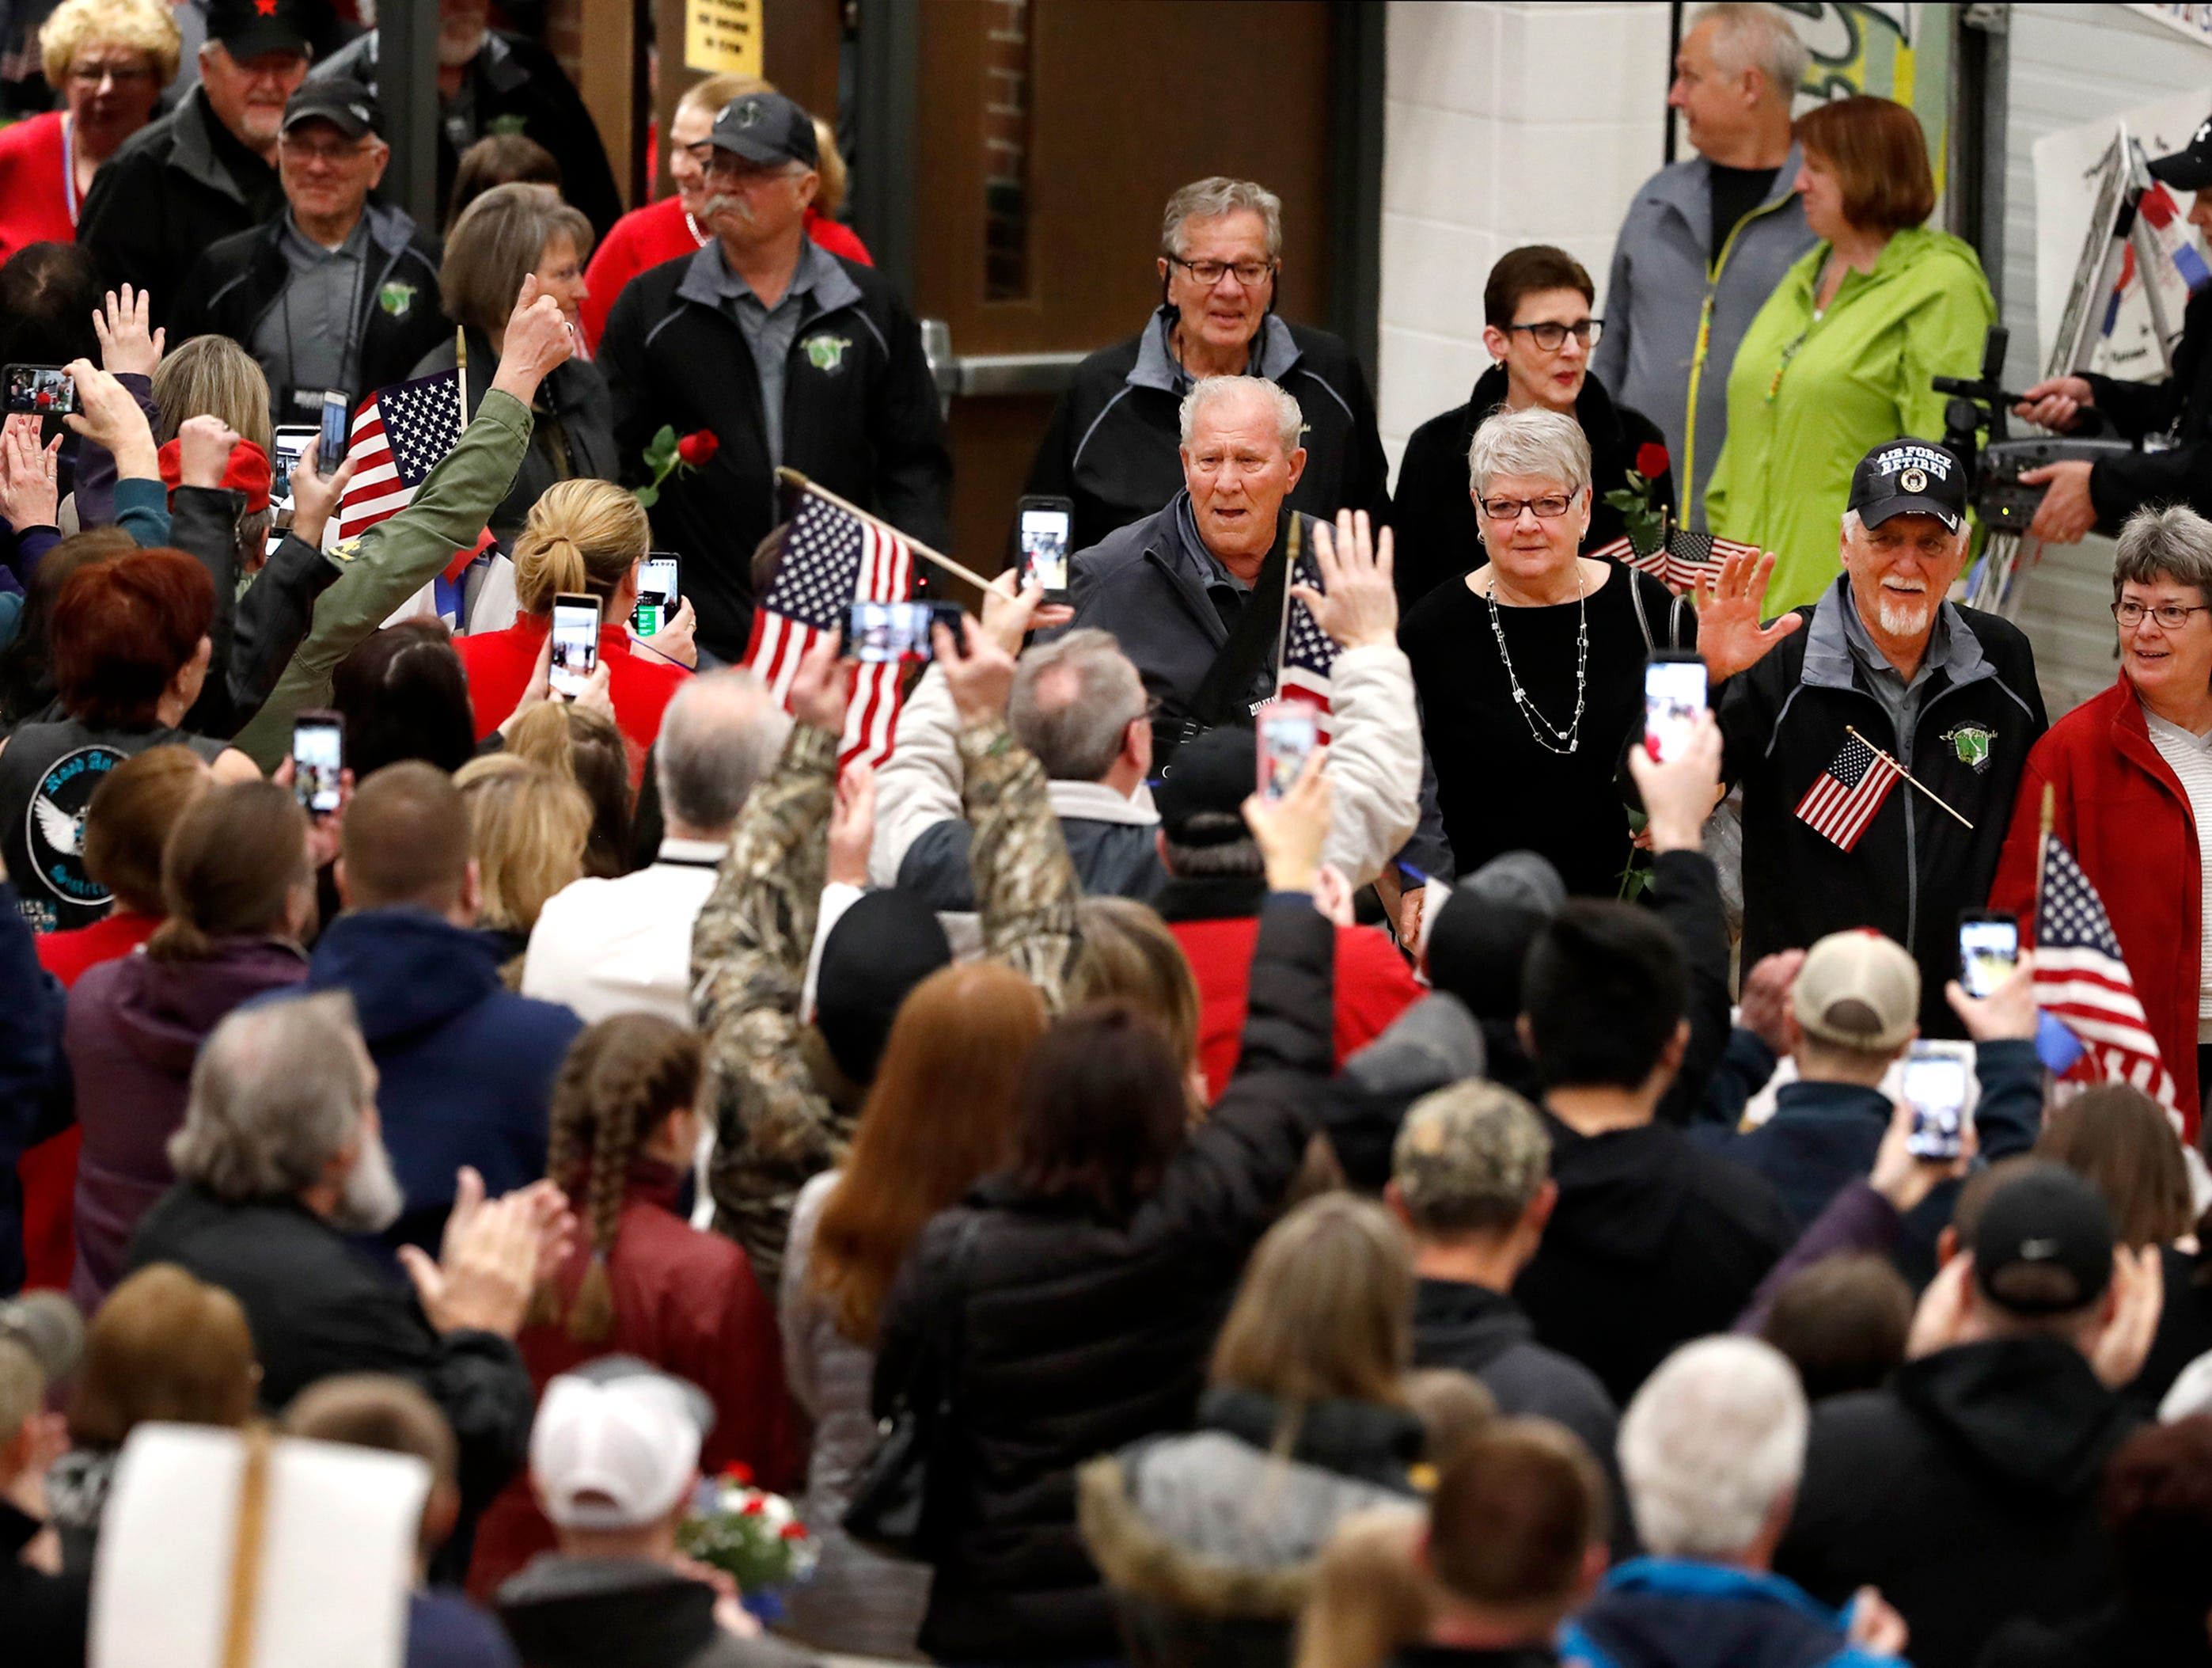 Vietnam veterans are greeted by a crowd of people during the Old Glory Honor Flight-Return to Nam welcome home Saturday, March 9, 2019, at Menasha High School in Menasha, Wis. Veterans were greeted by friends, family, the Menasha High School band, and the 484th Army Band.Danny Damiani/USA TODAY NETWORK-Wisconsin